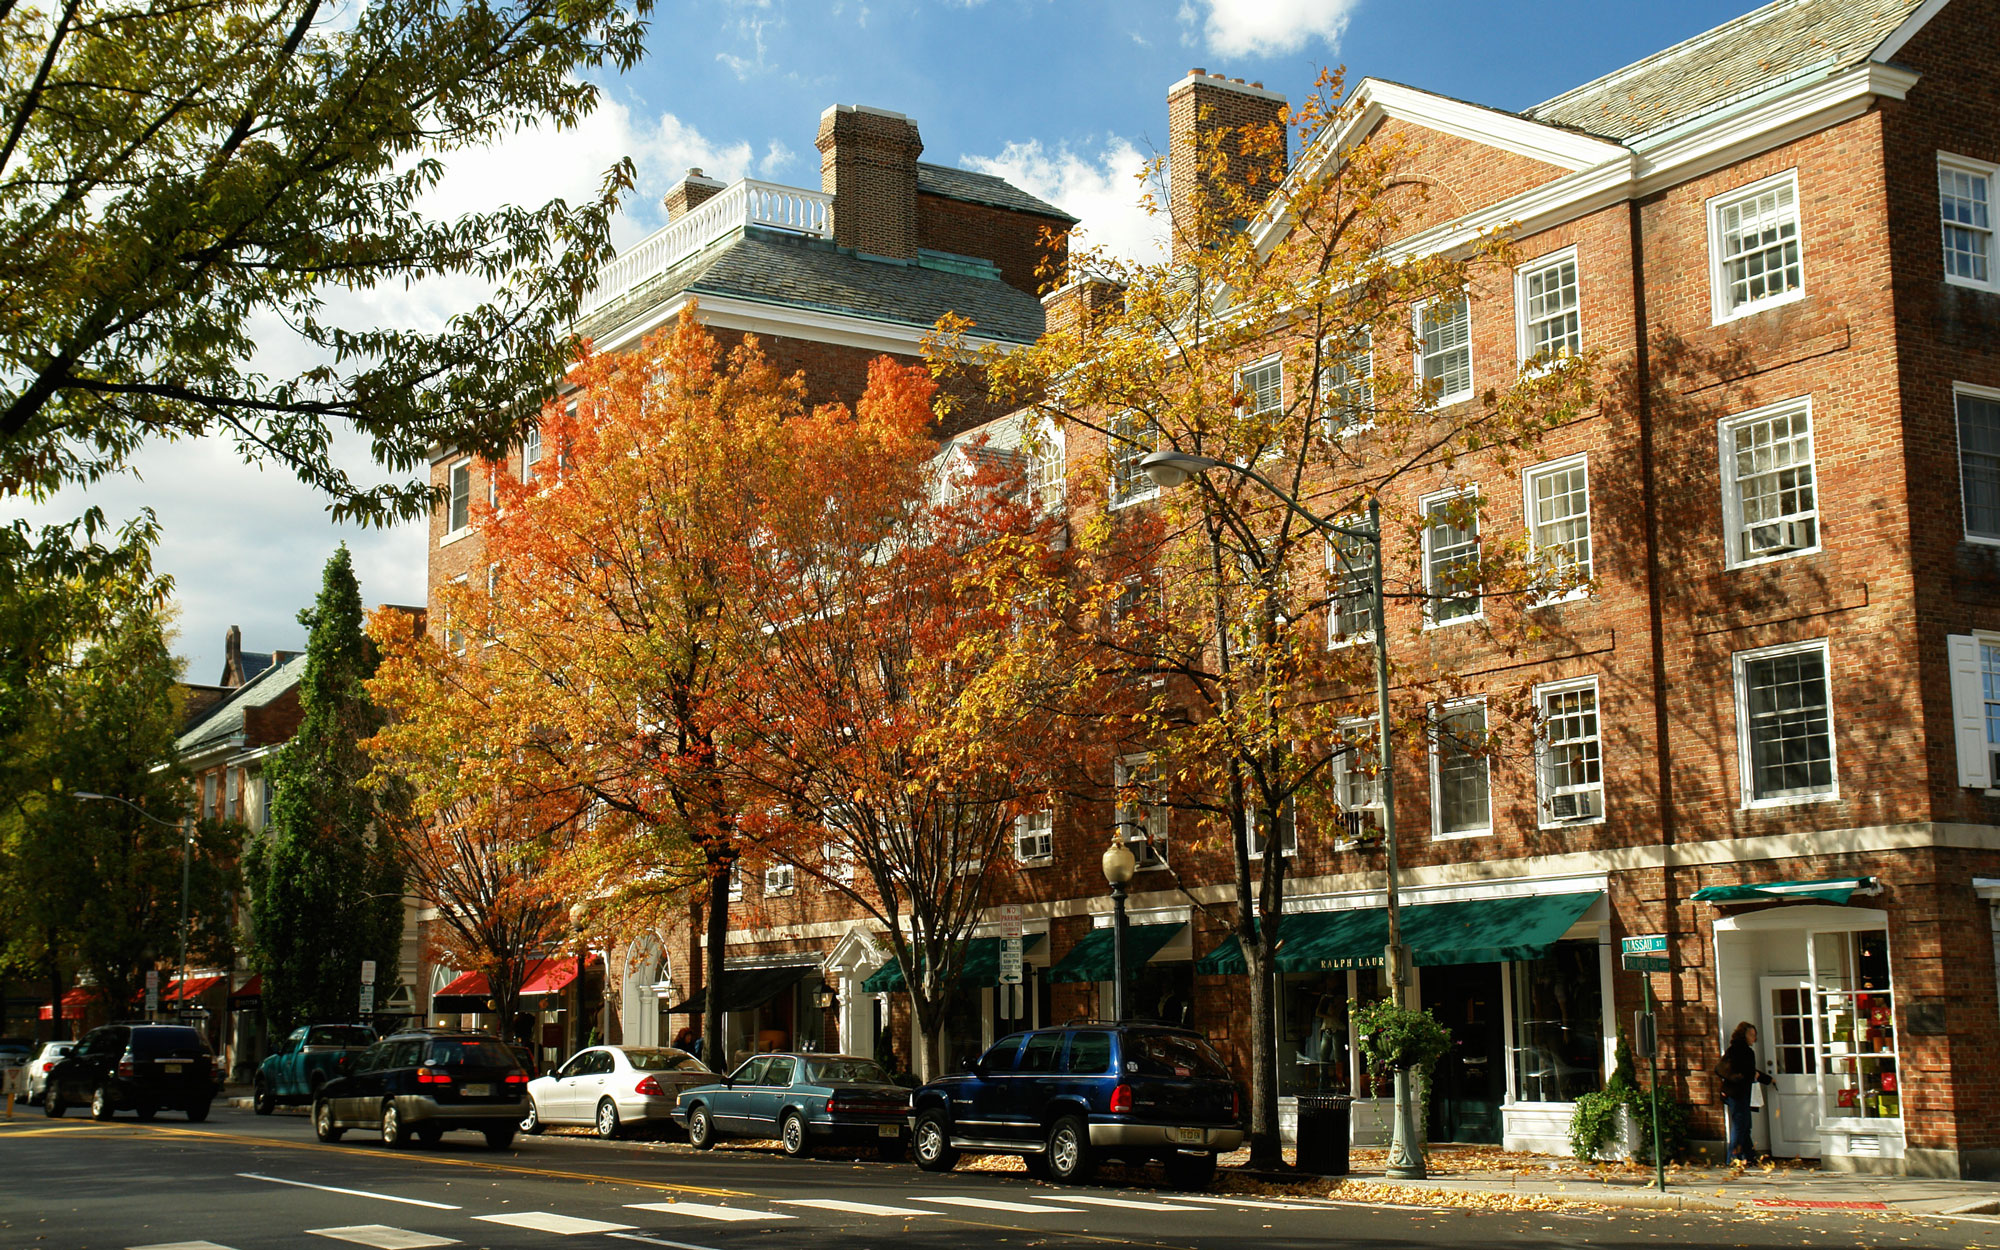 America's Best Towns for Halloween: Princeton